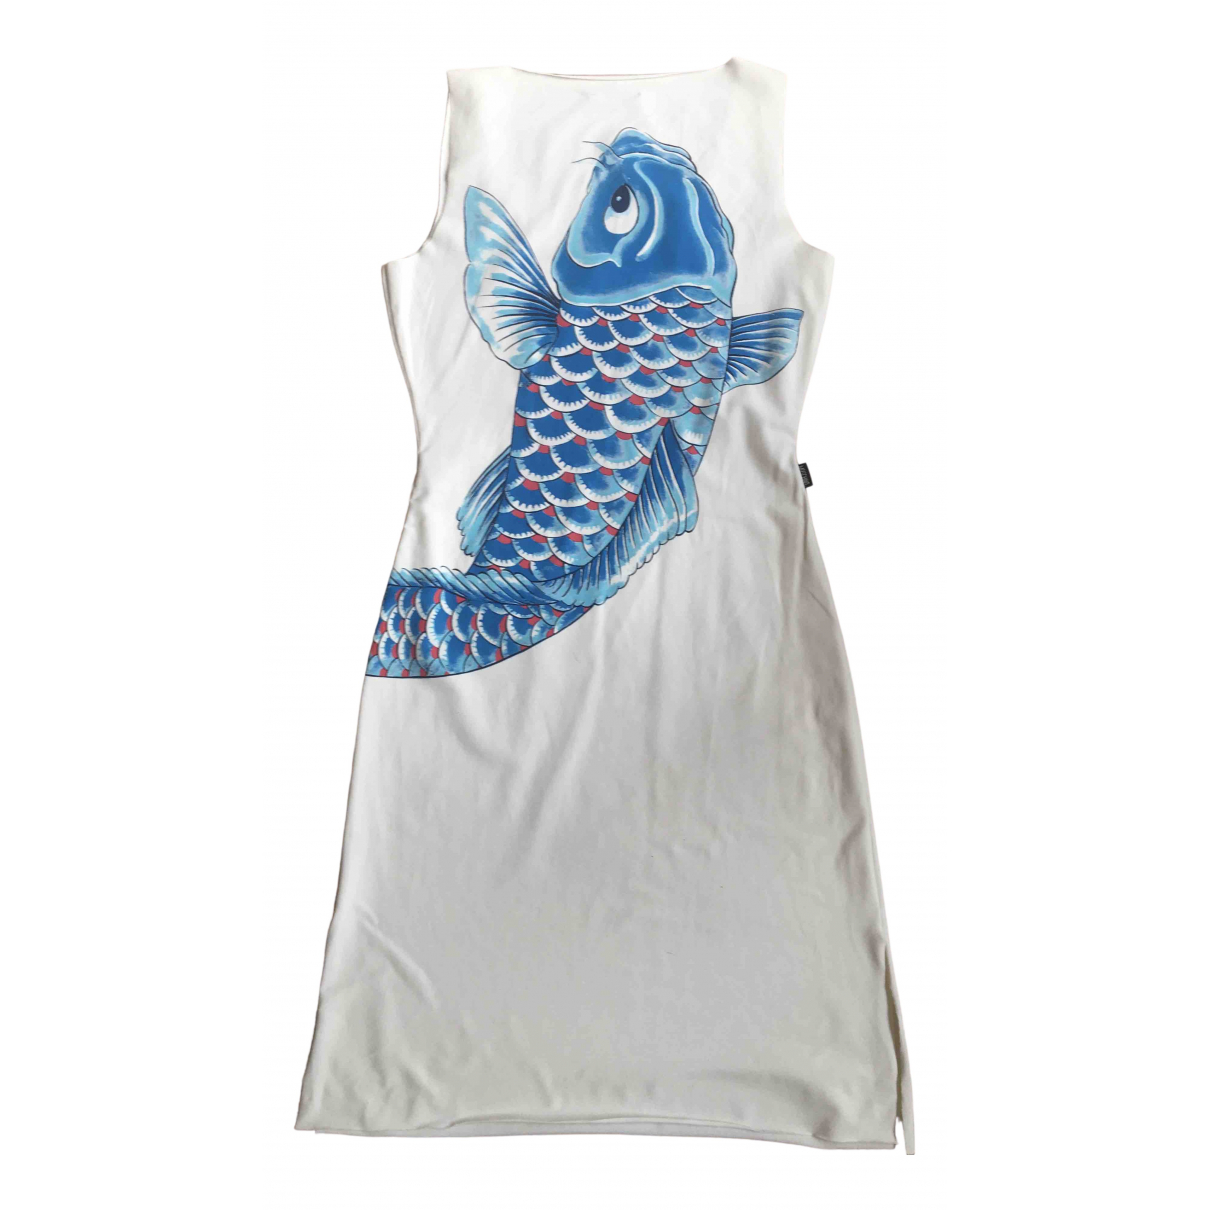 Moschino Cheap And Chic \N White dress for Women 42 IT